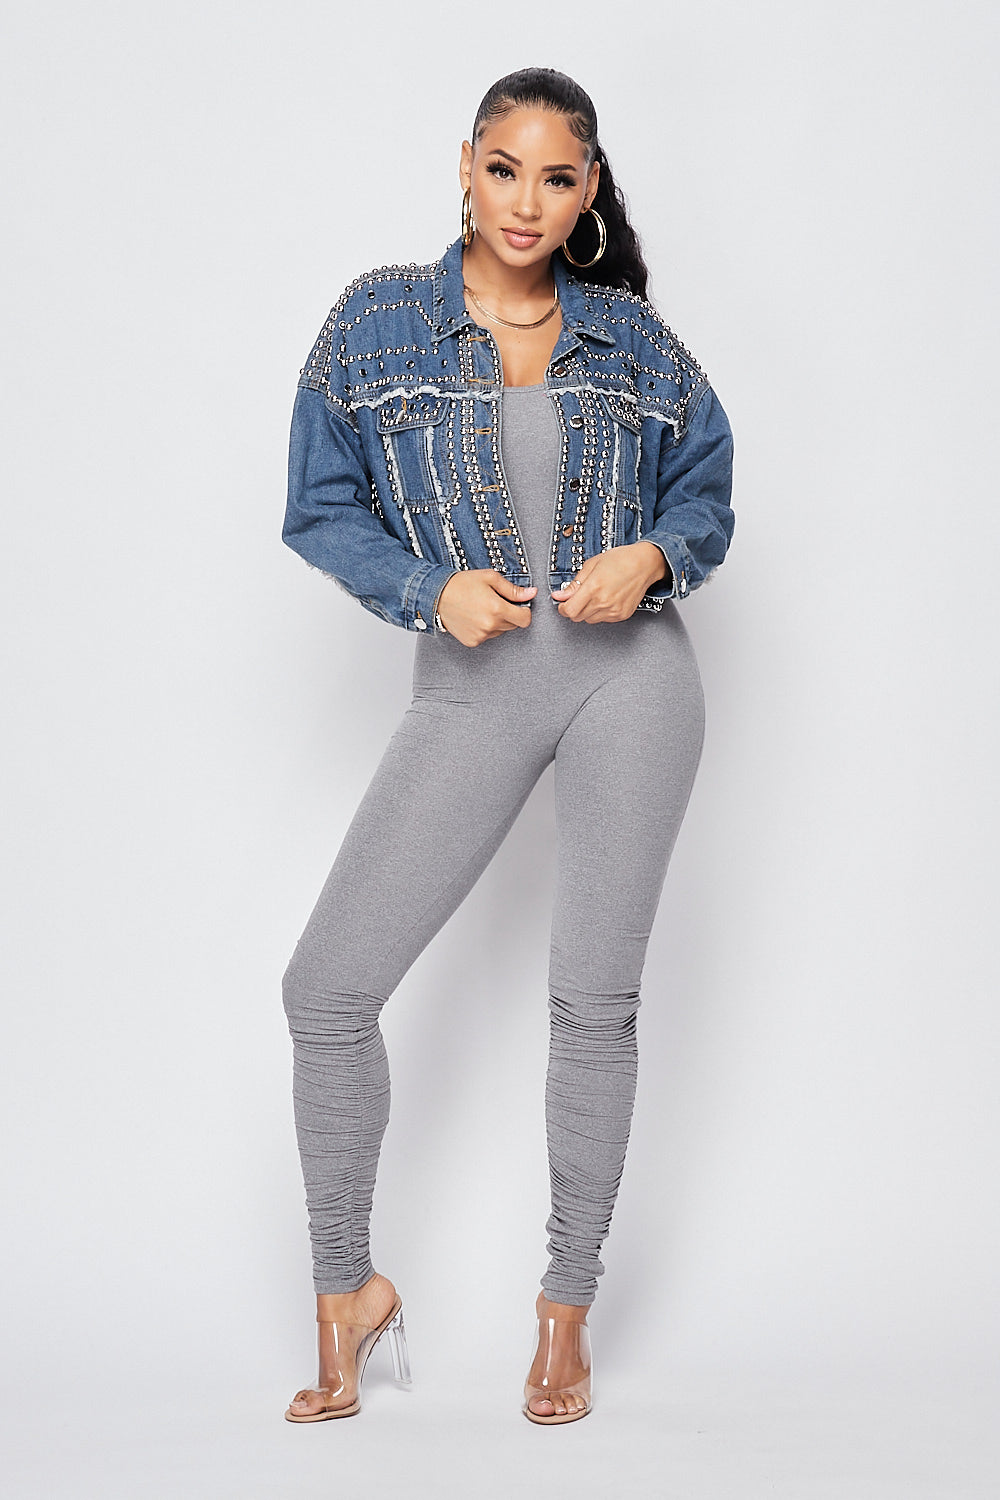 Keep You Stud Jacket-M.BLUE - Fashion House USA